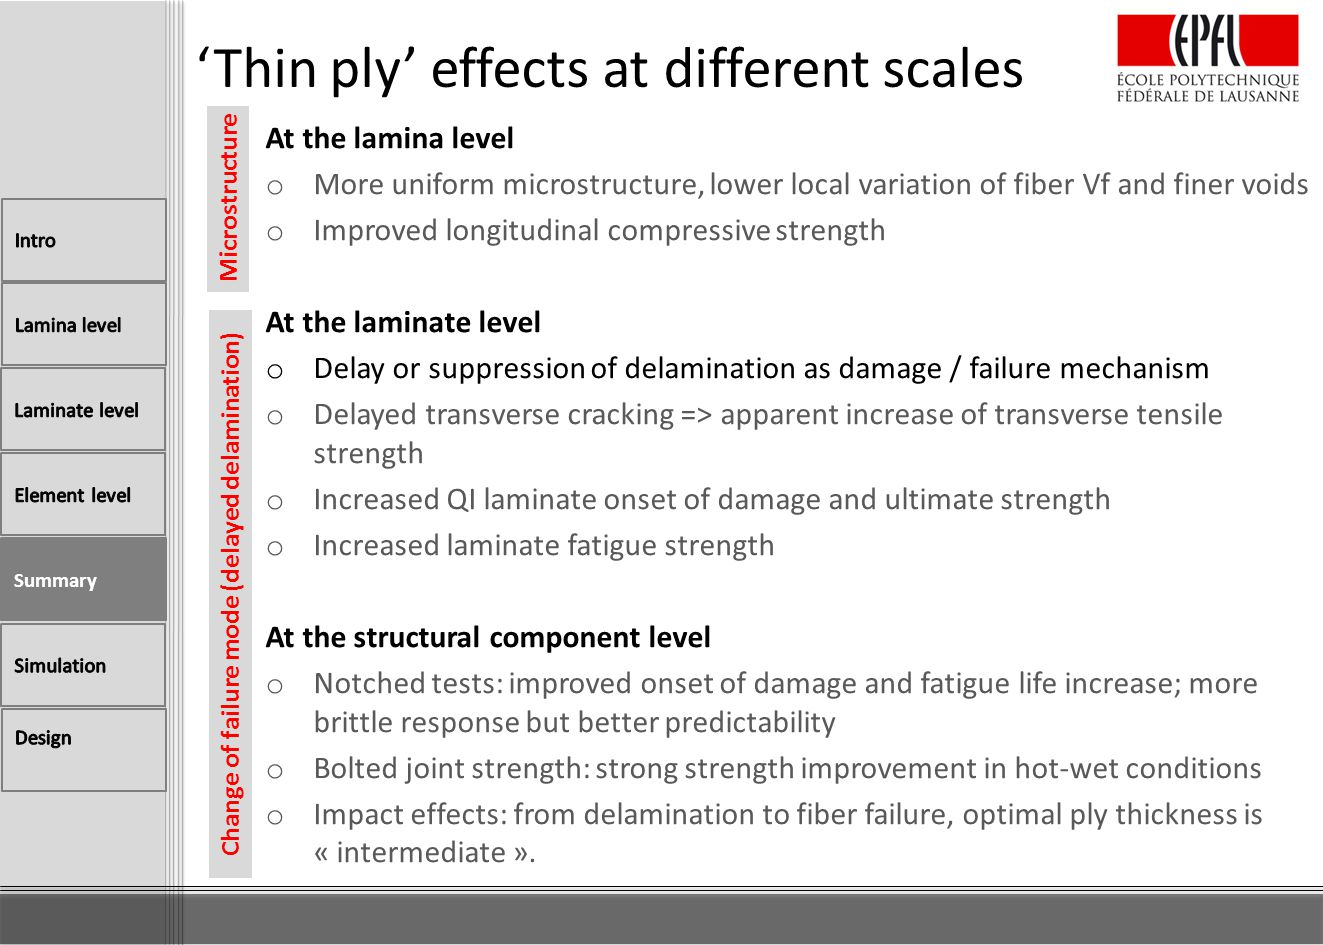 'Thin ply' effects at different scales